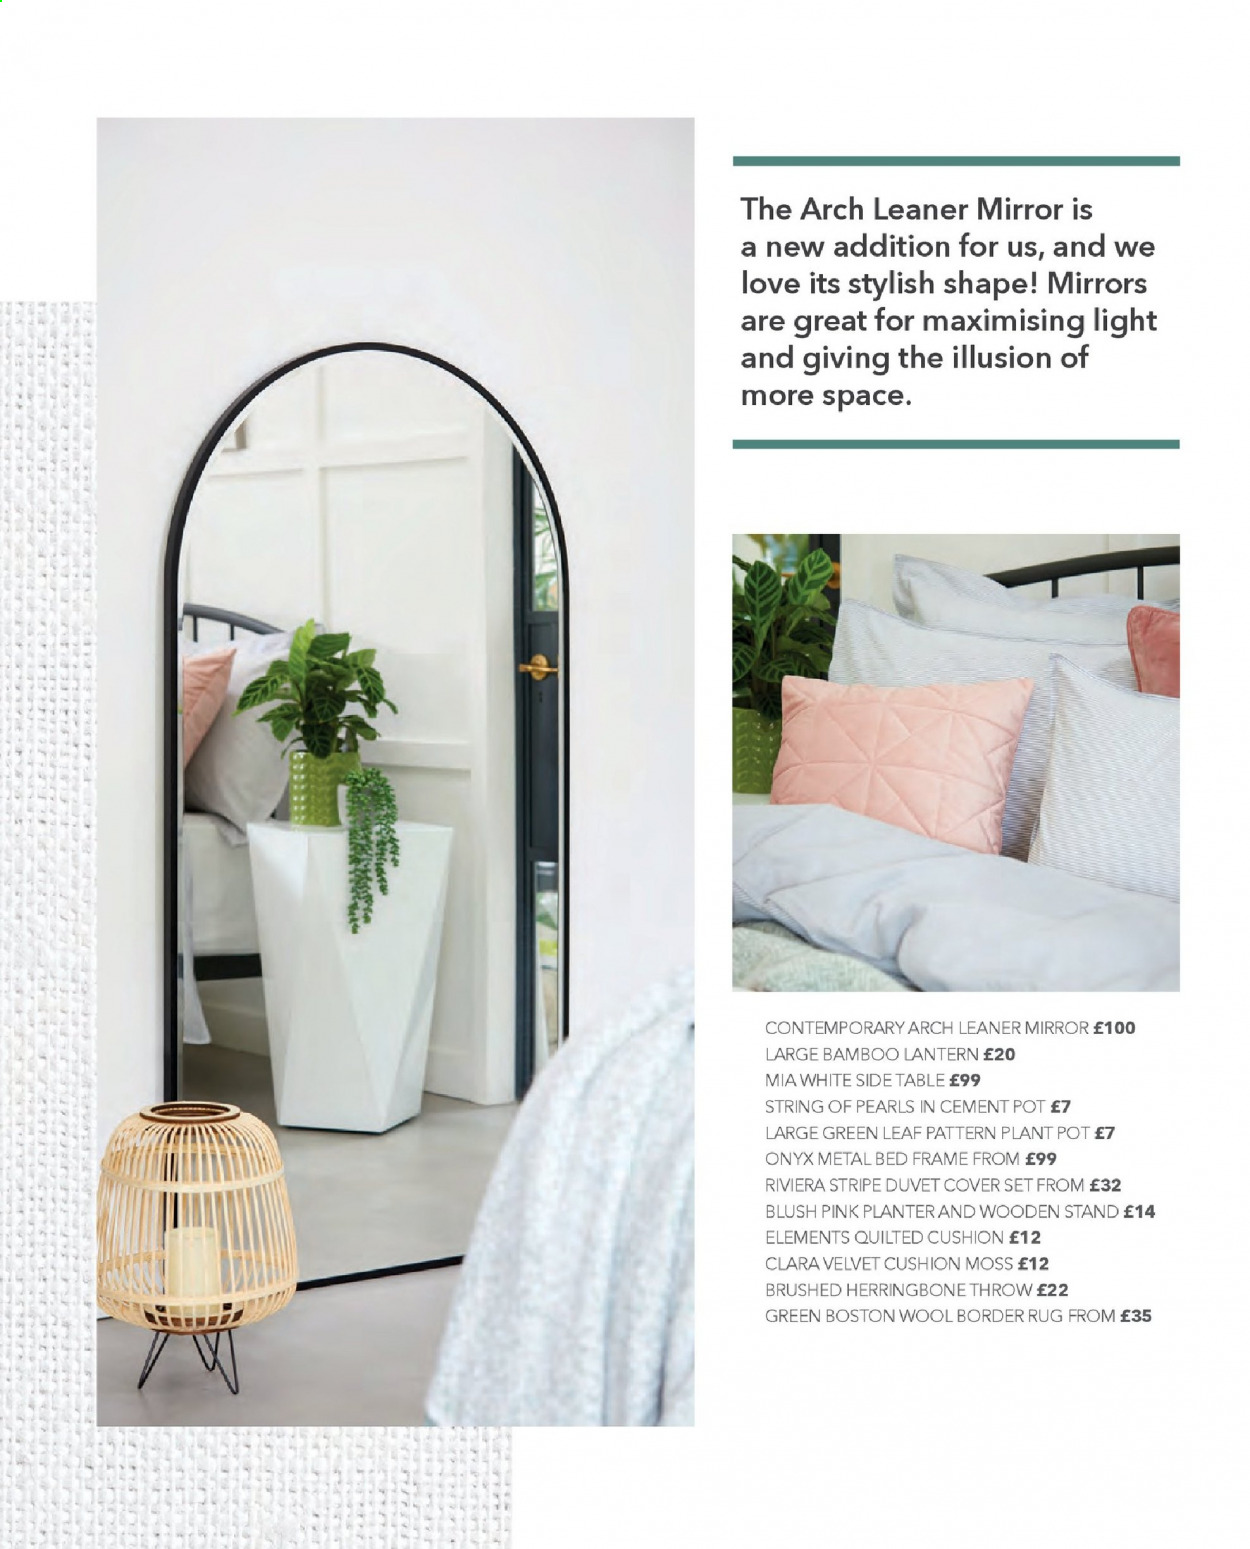 Dunelm offer  - Sales products - bamboo, bed, bed frame, border rug, cover, cushion, duvet, duvet cover, frame, metal bed, mirror, rug, stand, table, throw, plant pot, pot, lantern, wool. Page 12.